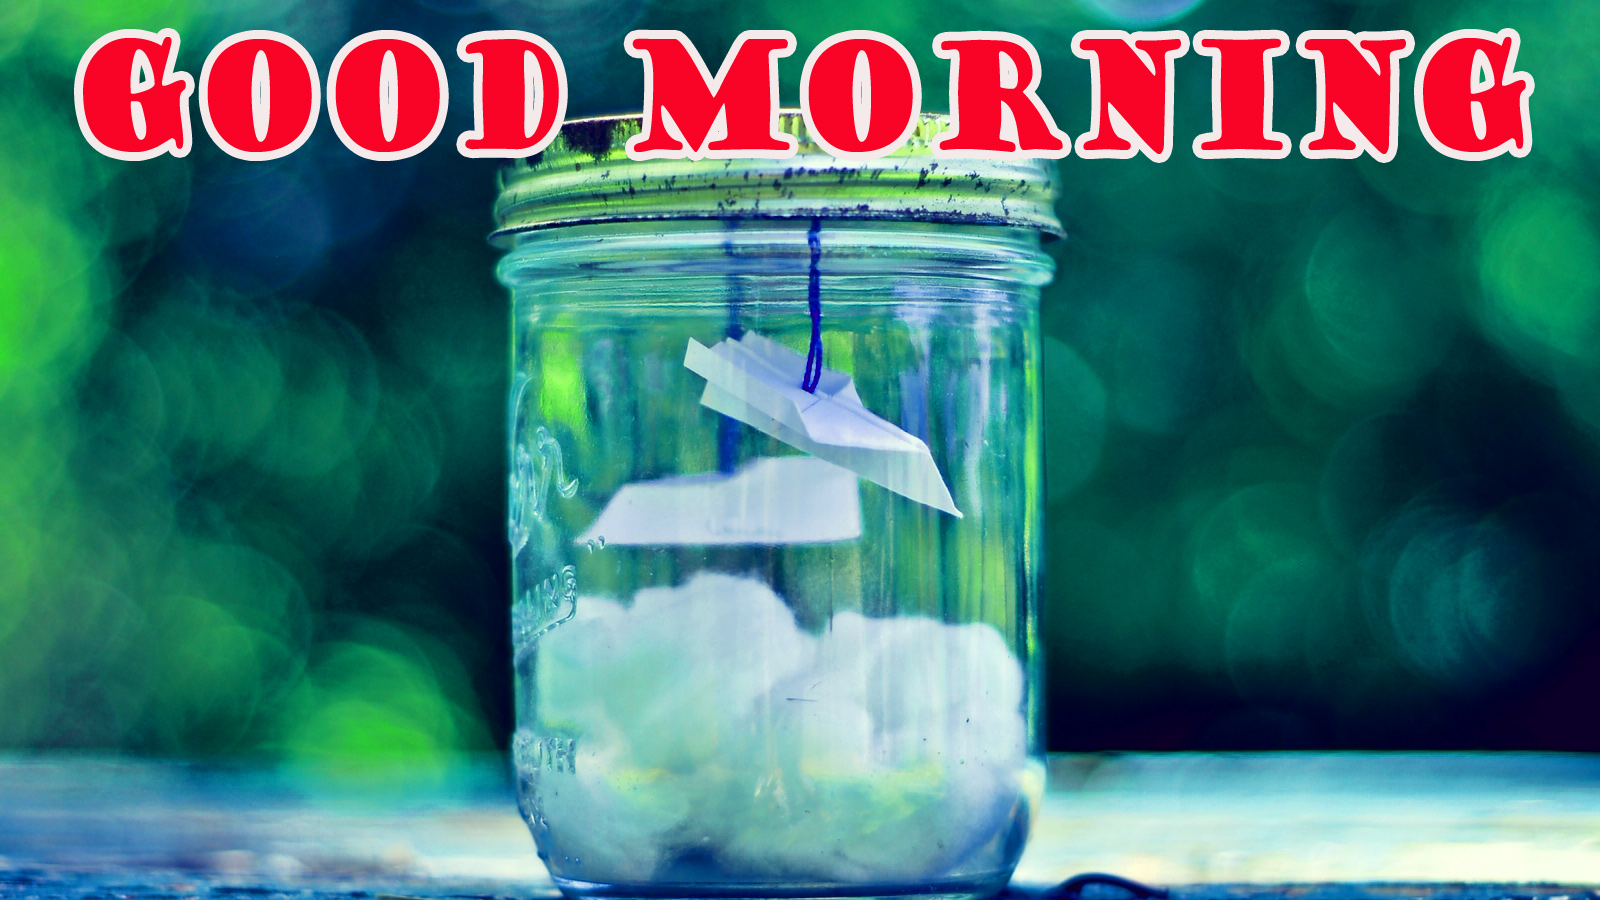 गुड मॉर्निंग New Wonderful Good Morning Wallpaper Pictures HD For Facebook